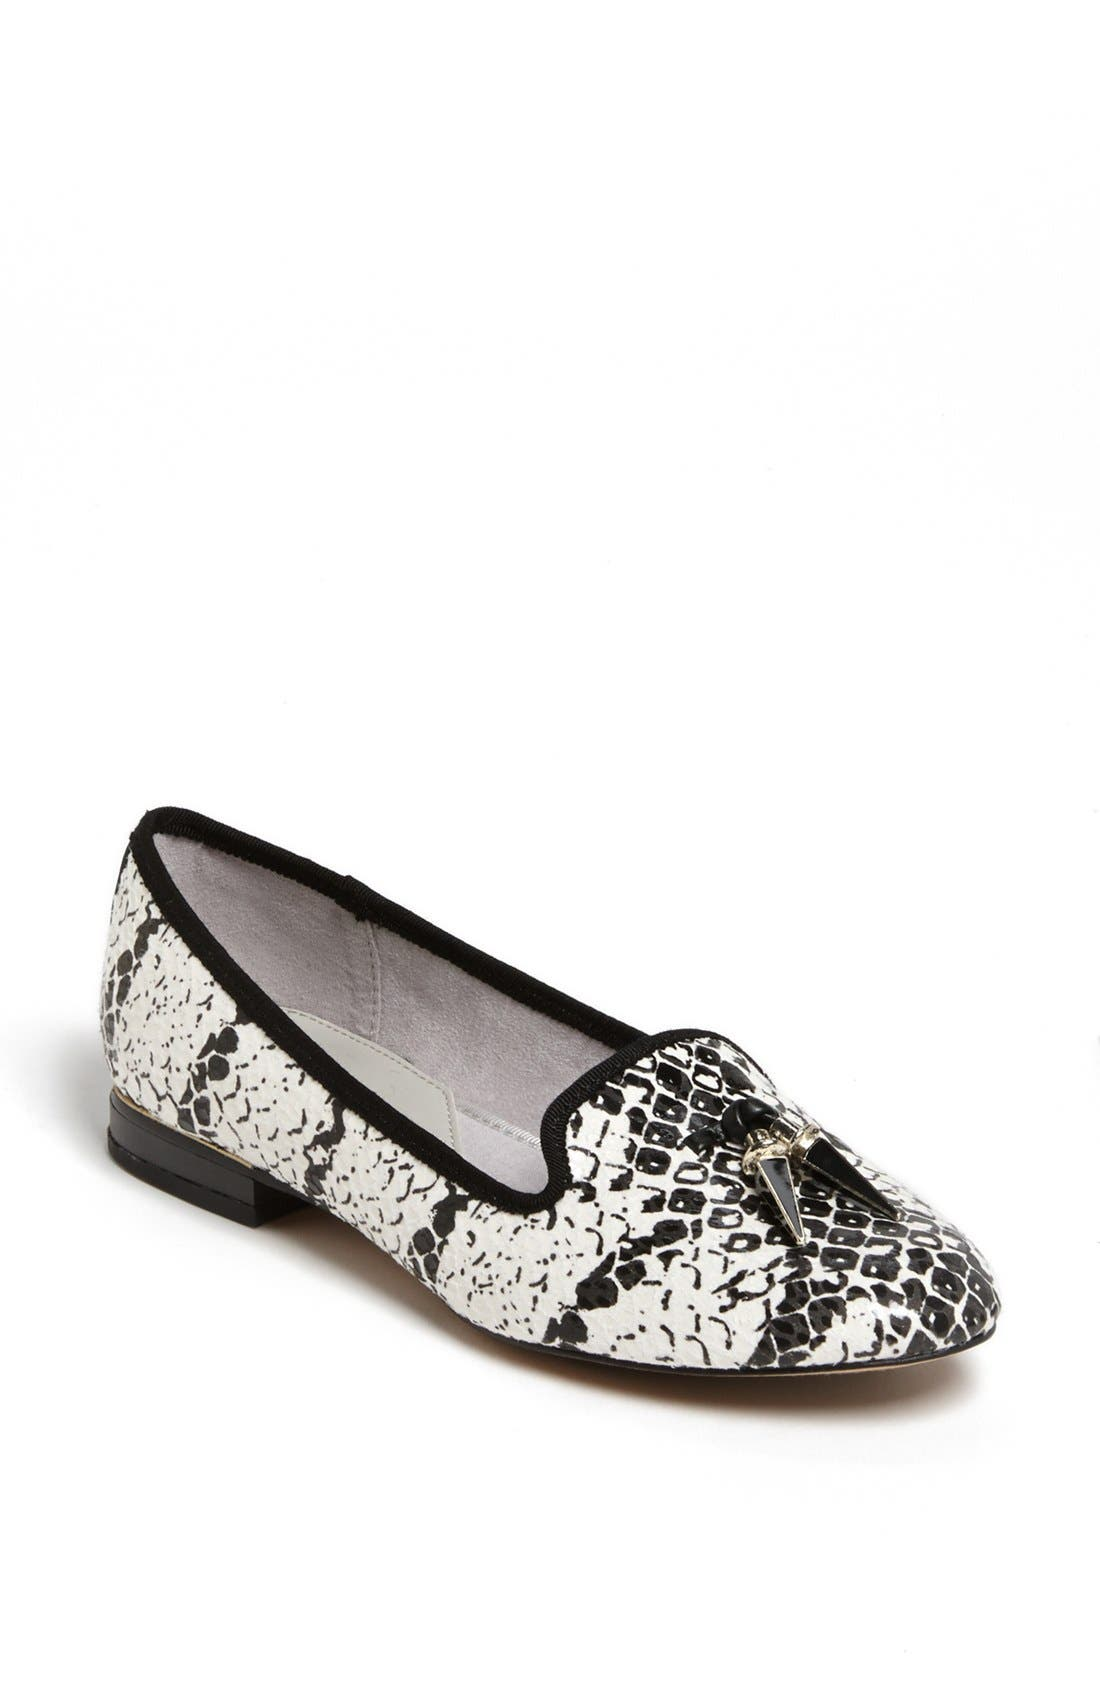 Alternate Image 1 Selected - Circus by Sam Edelman 'Nell' Flat